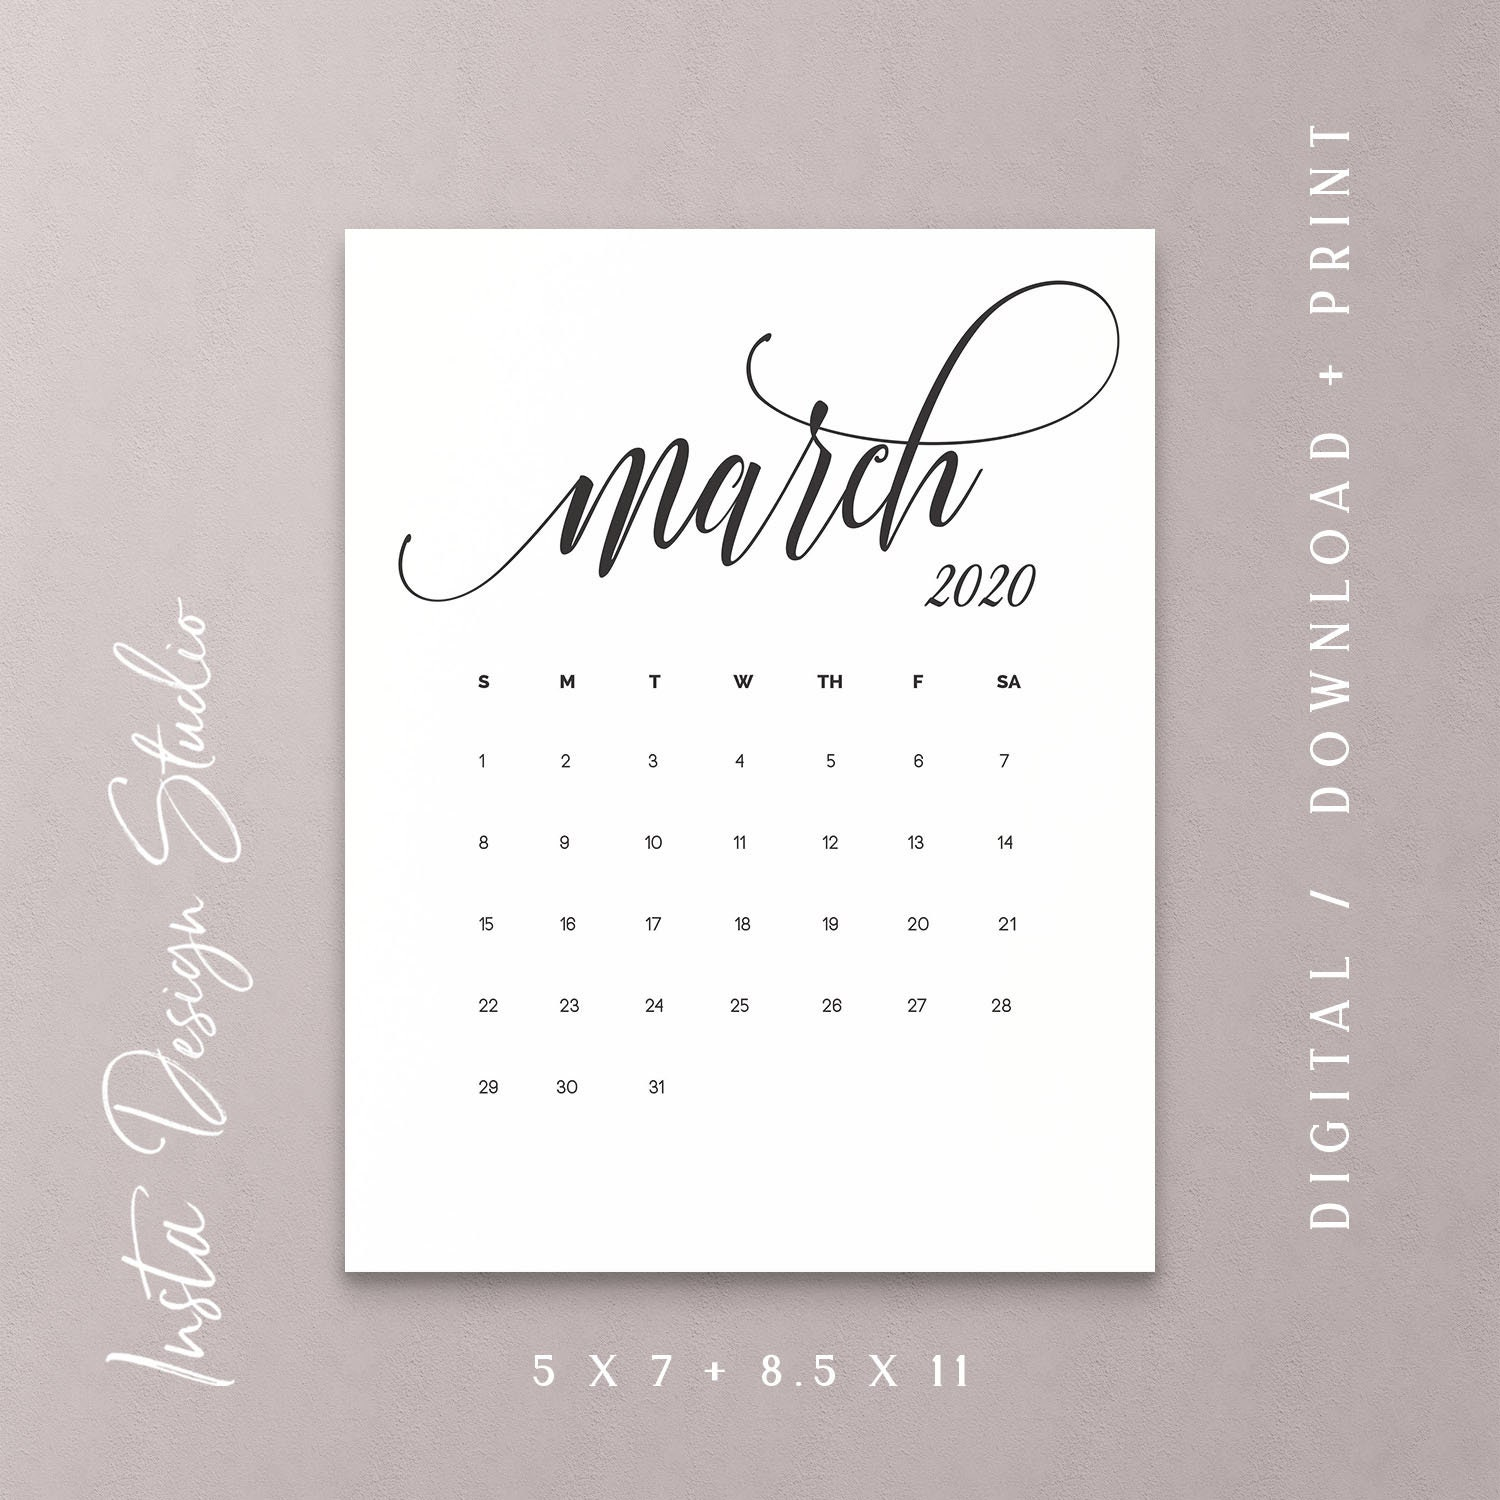 photograph relating to Printable Pregnancy Calendar named MARCH 2020 printable being pregnant kid announcement calendar social media flat lay picture prop owing day conserve the day electronic record down load